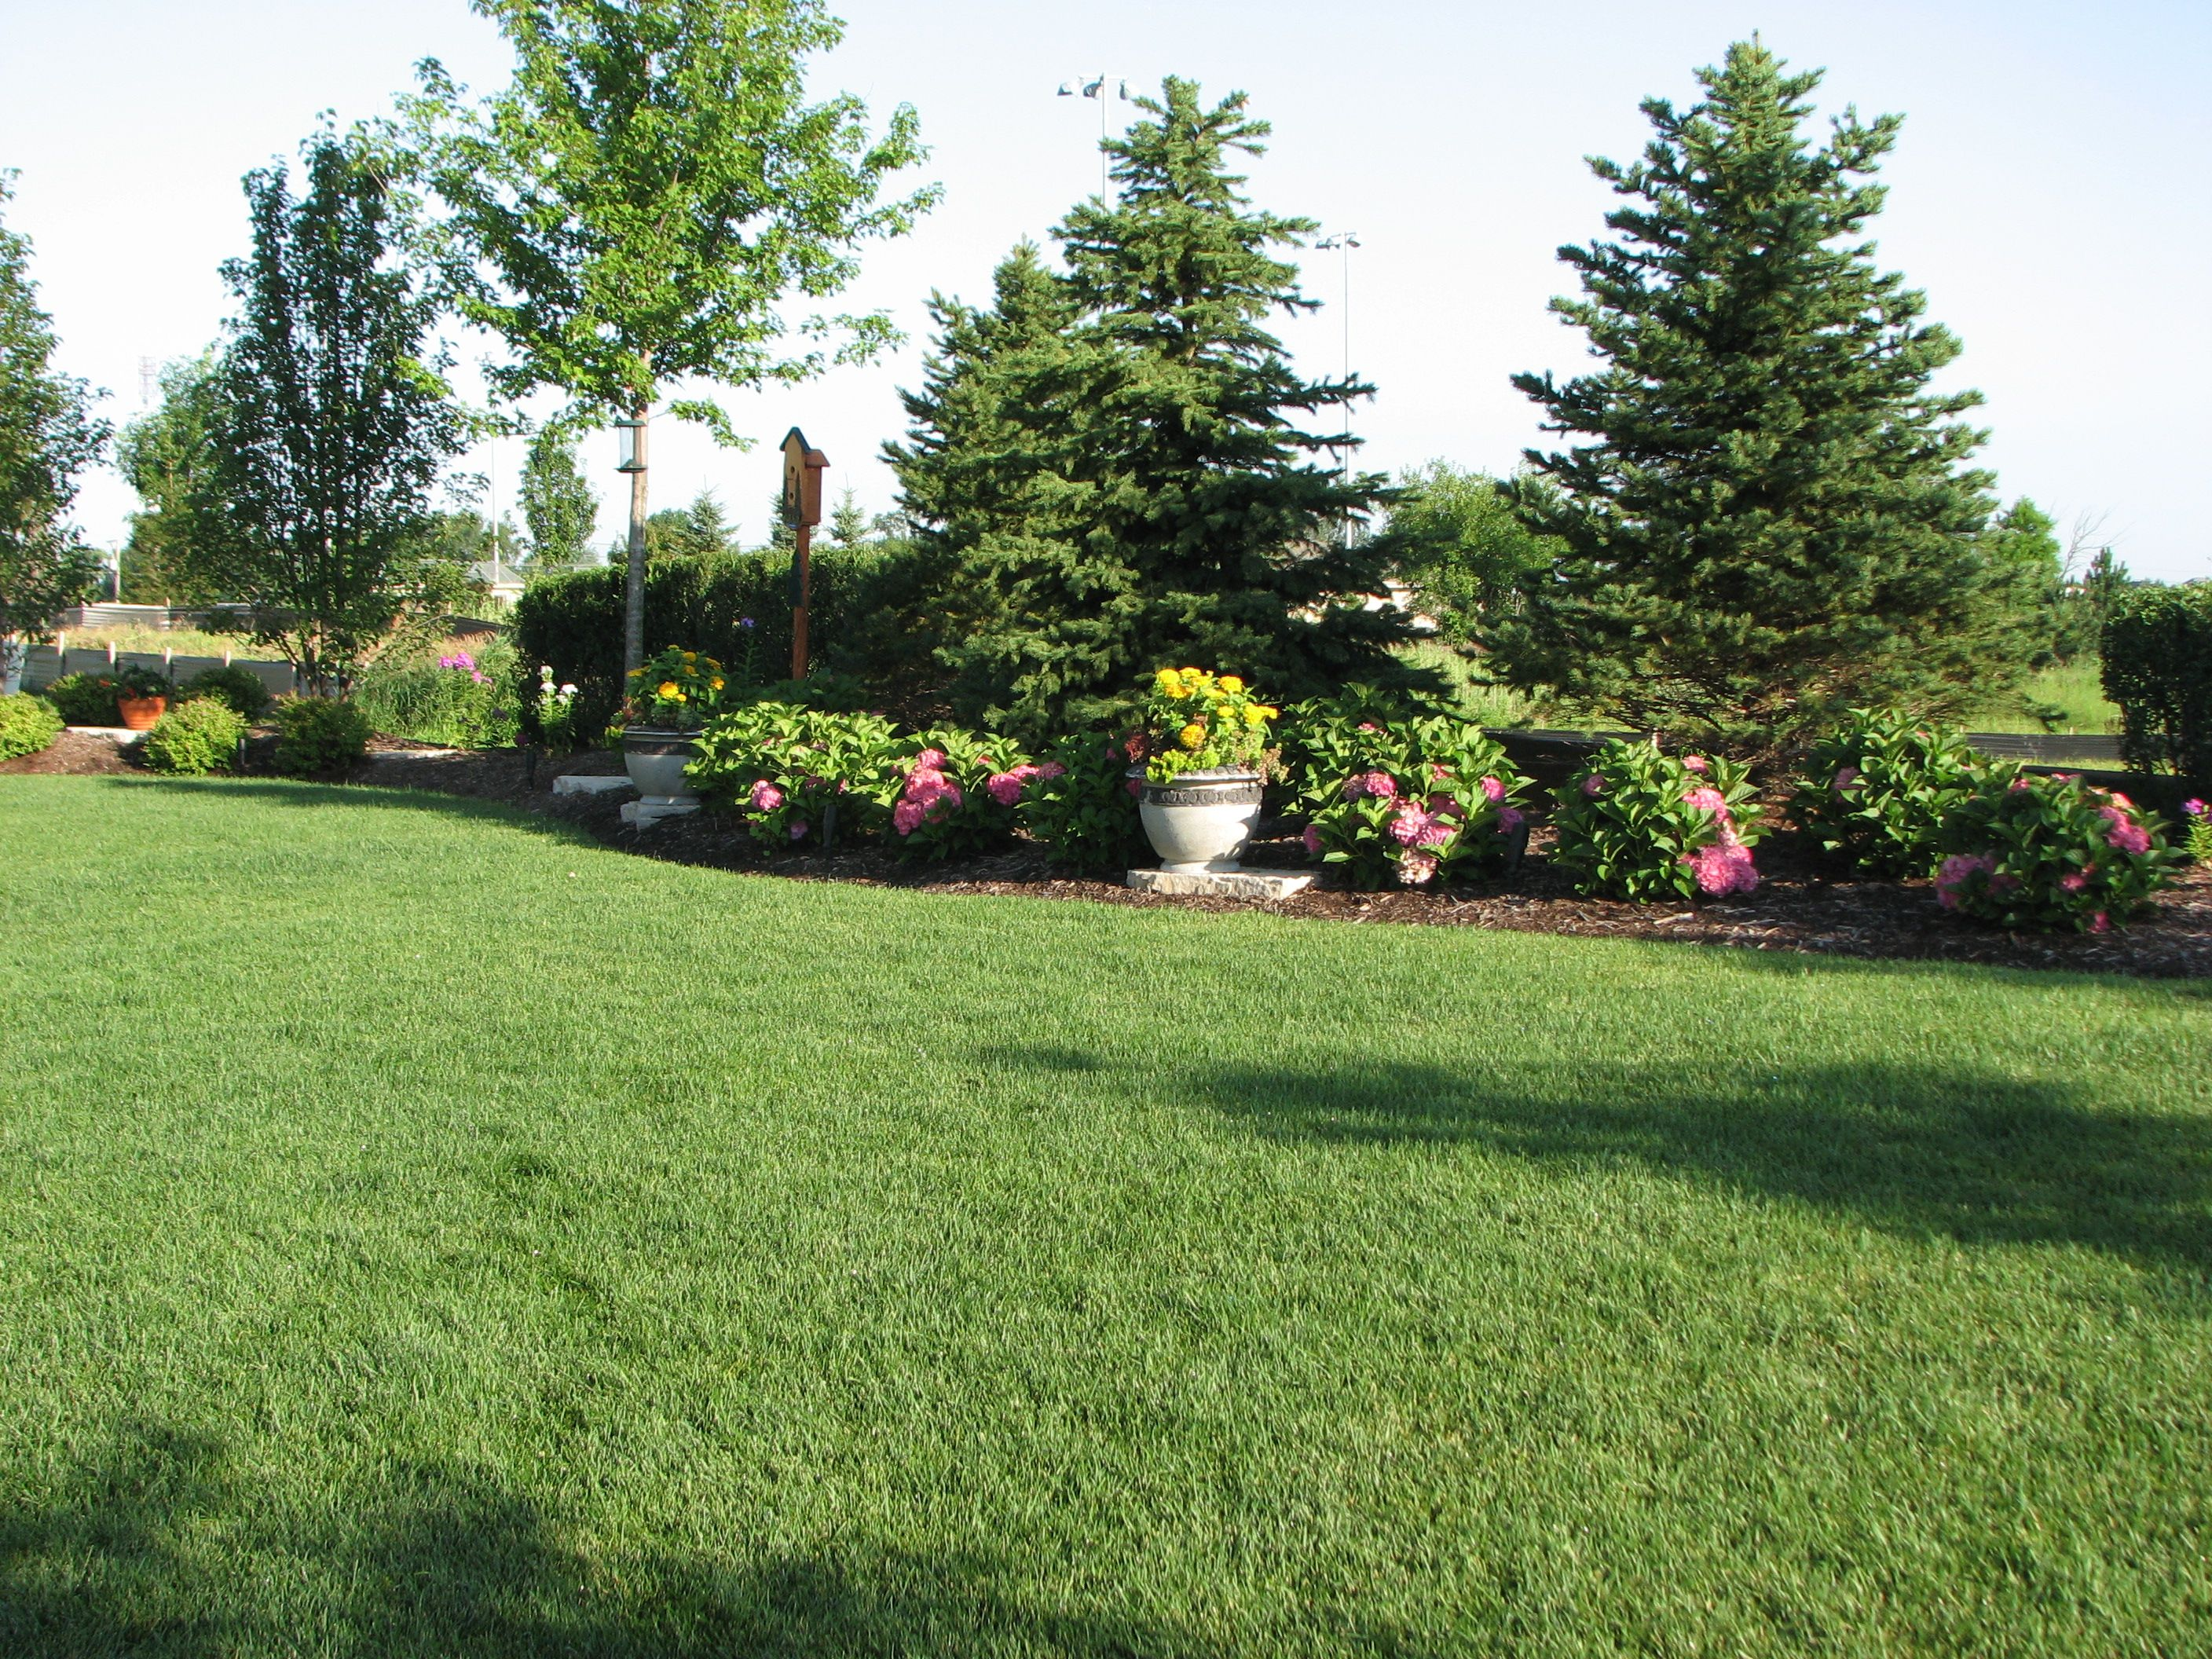 Backyard landscaping for privacy existing home for Yard landscaping ideas